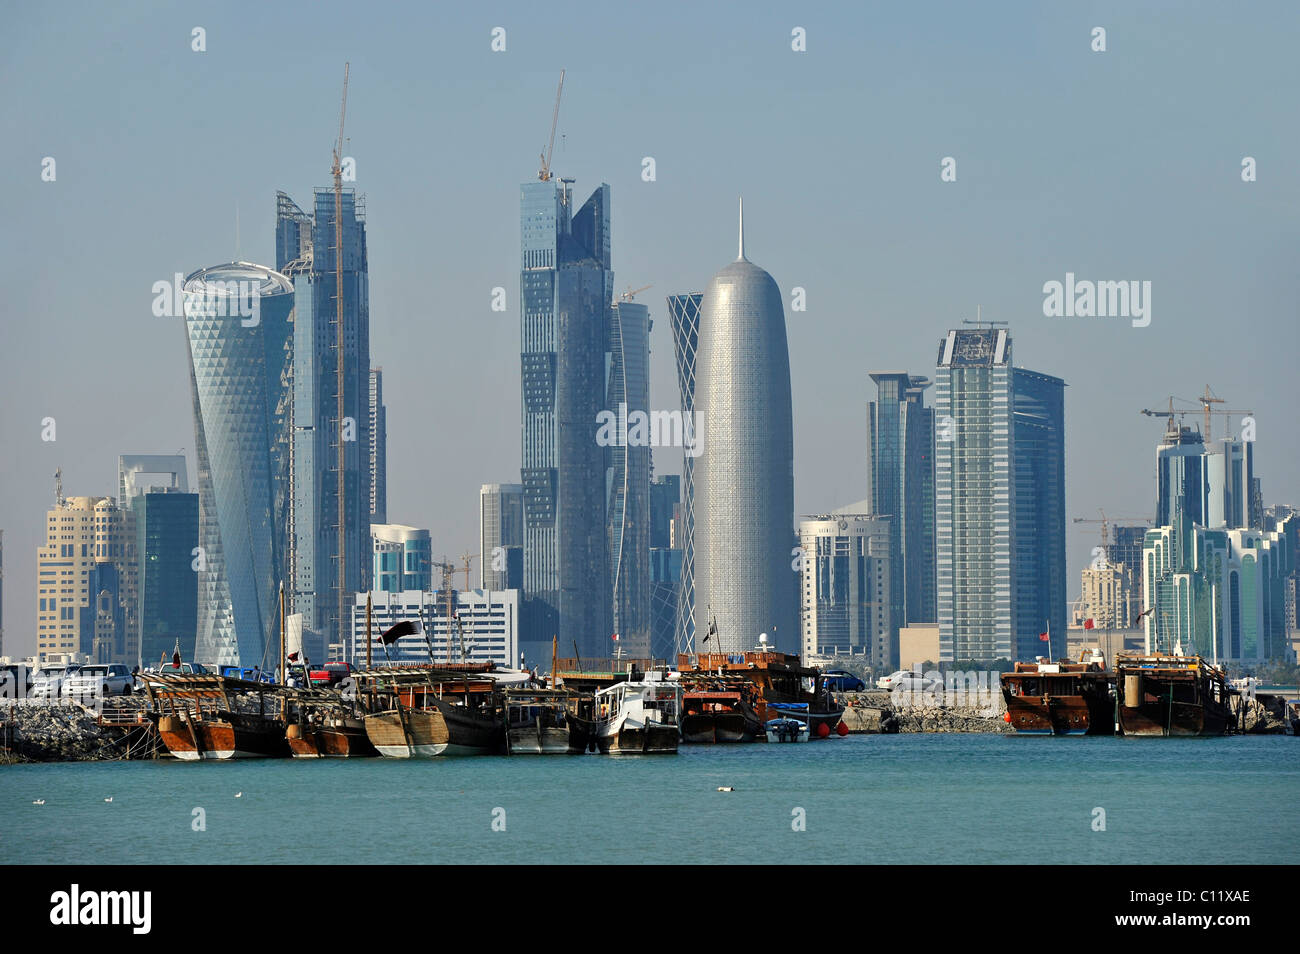 Tradition and modernity, dhow wooden cargo ships in front of the skyline of Doha, Qatar, Persian Gulf, Middle East, - Stock Image